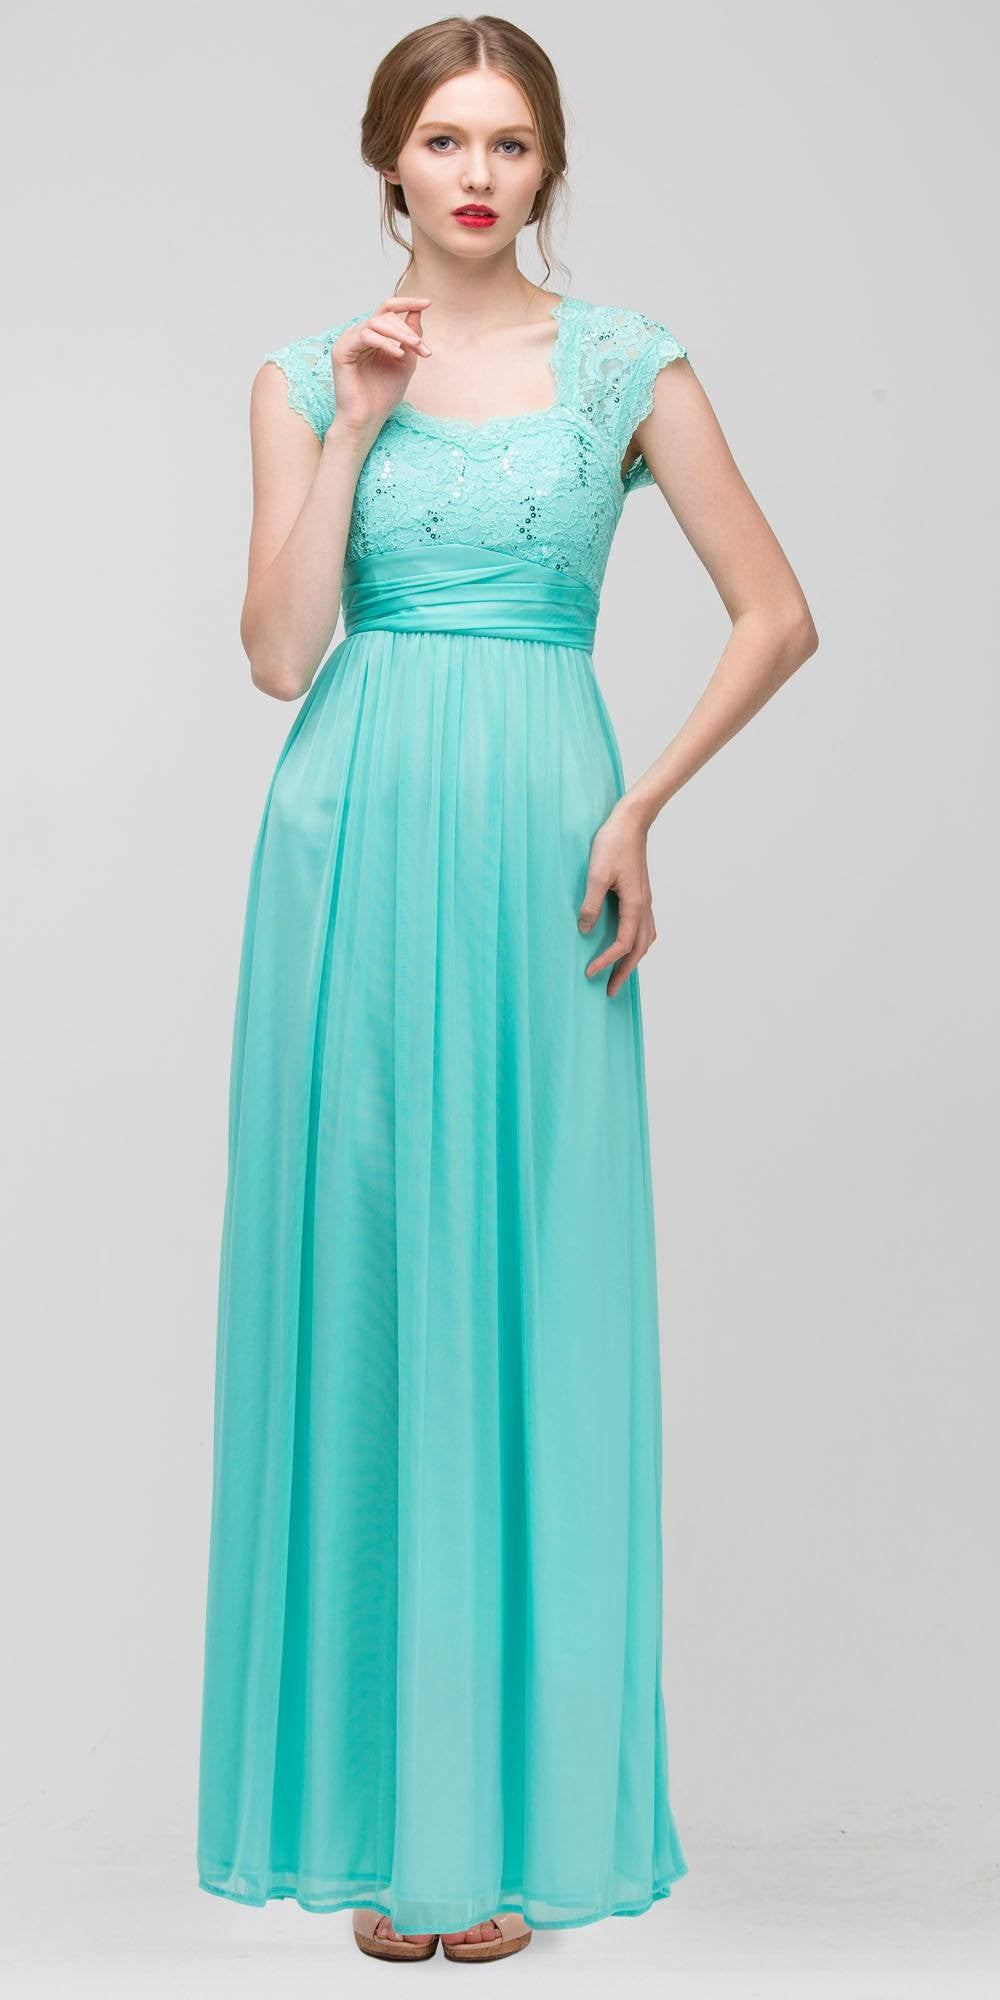 Sweetheart Neck Lace Bodice Mint Floor Length Dress